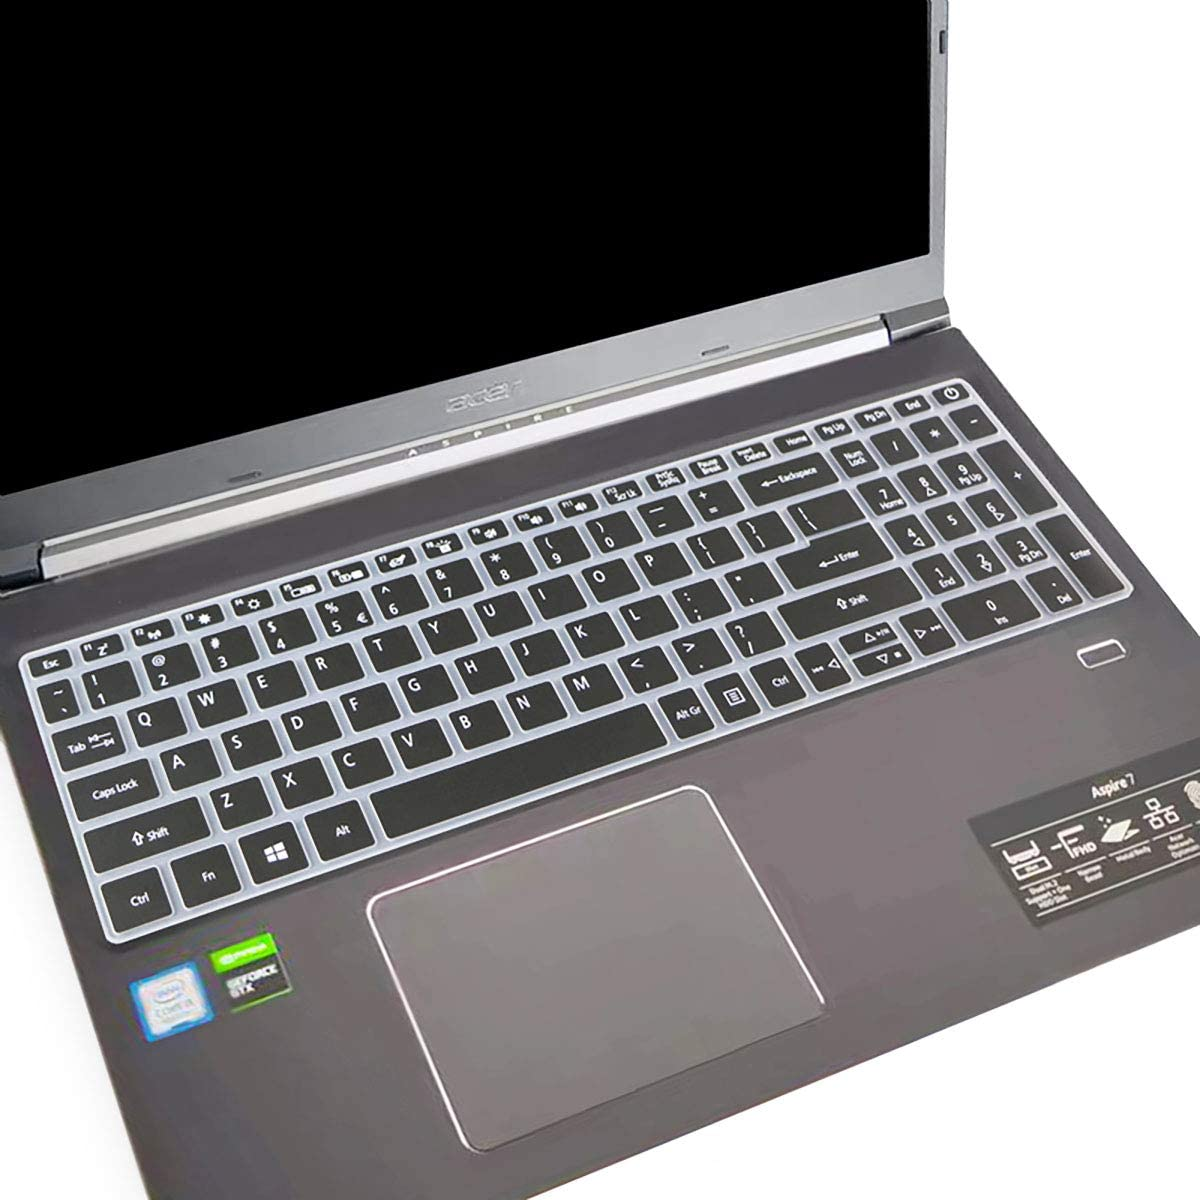 """Keyboard Cover for Acer Aspire 7 Laptop 15.6"""" Model A715-74G /A715-75G with Numeric Keypad ONLY(Not fit A715-71G 715-72G, A715-73G, A717 and Other Models) Keyboard Protective-Black"""